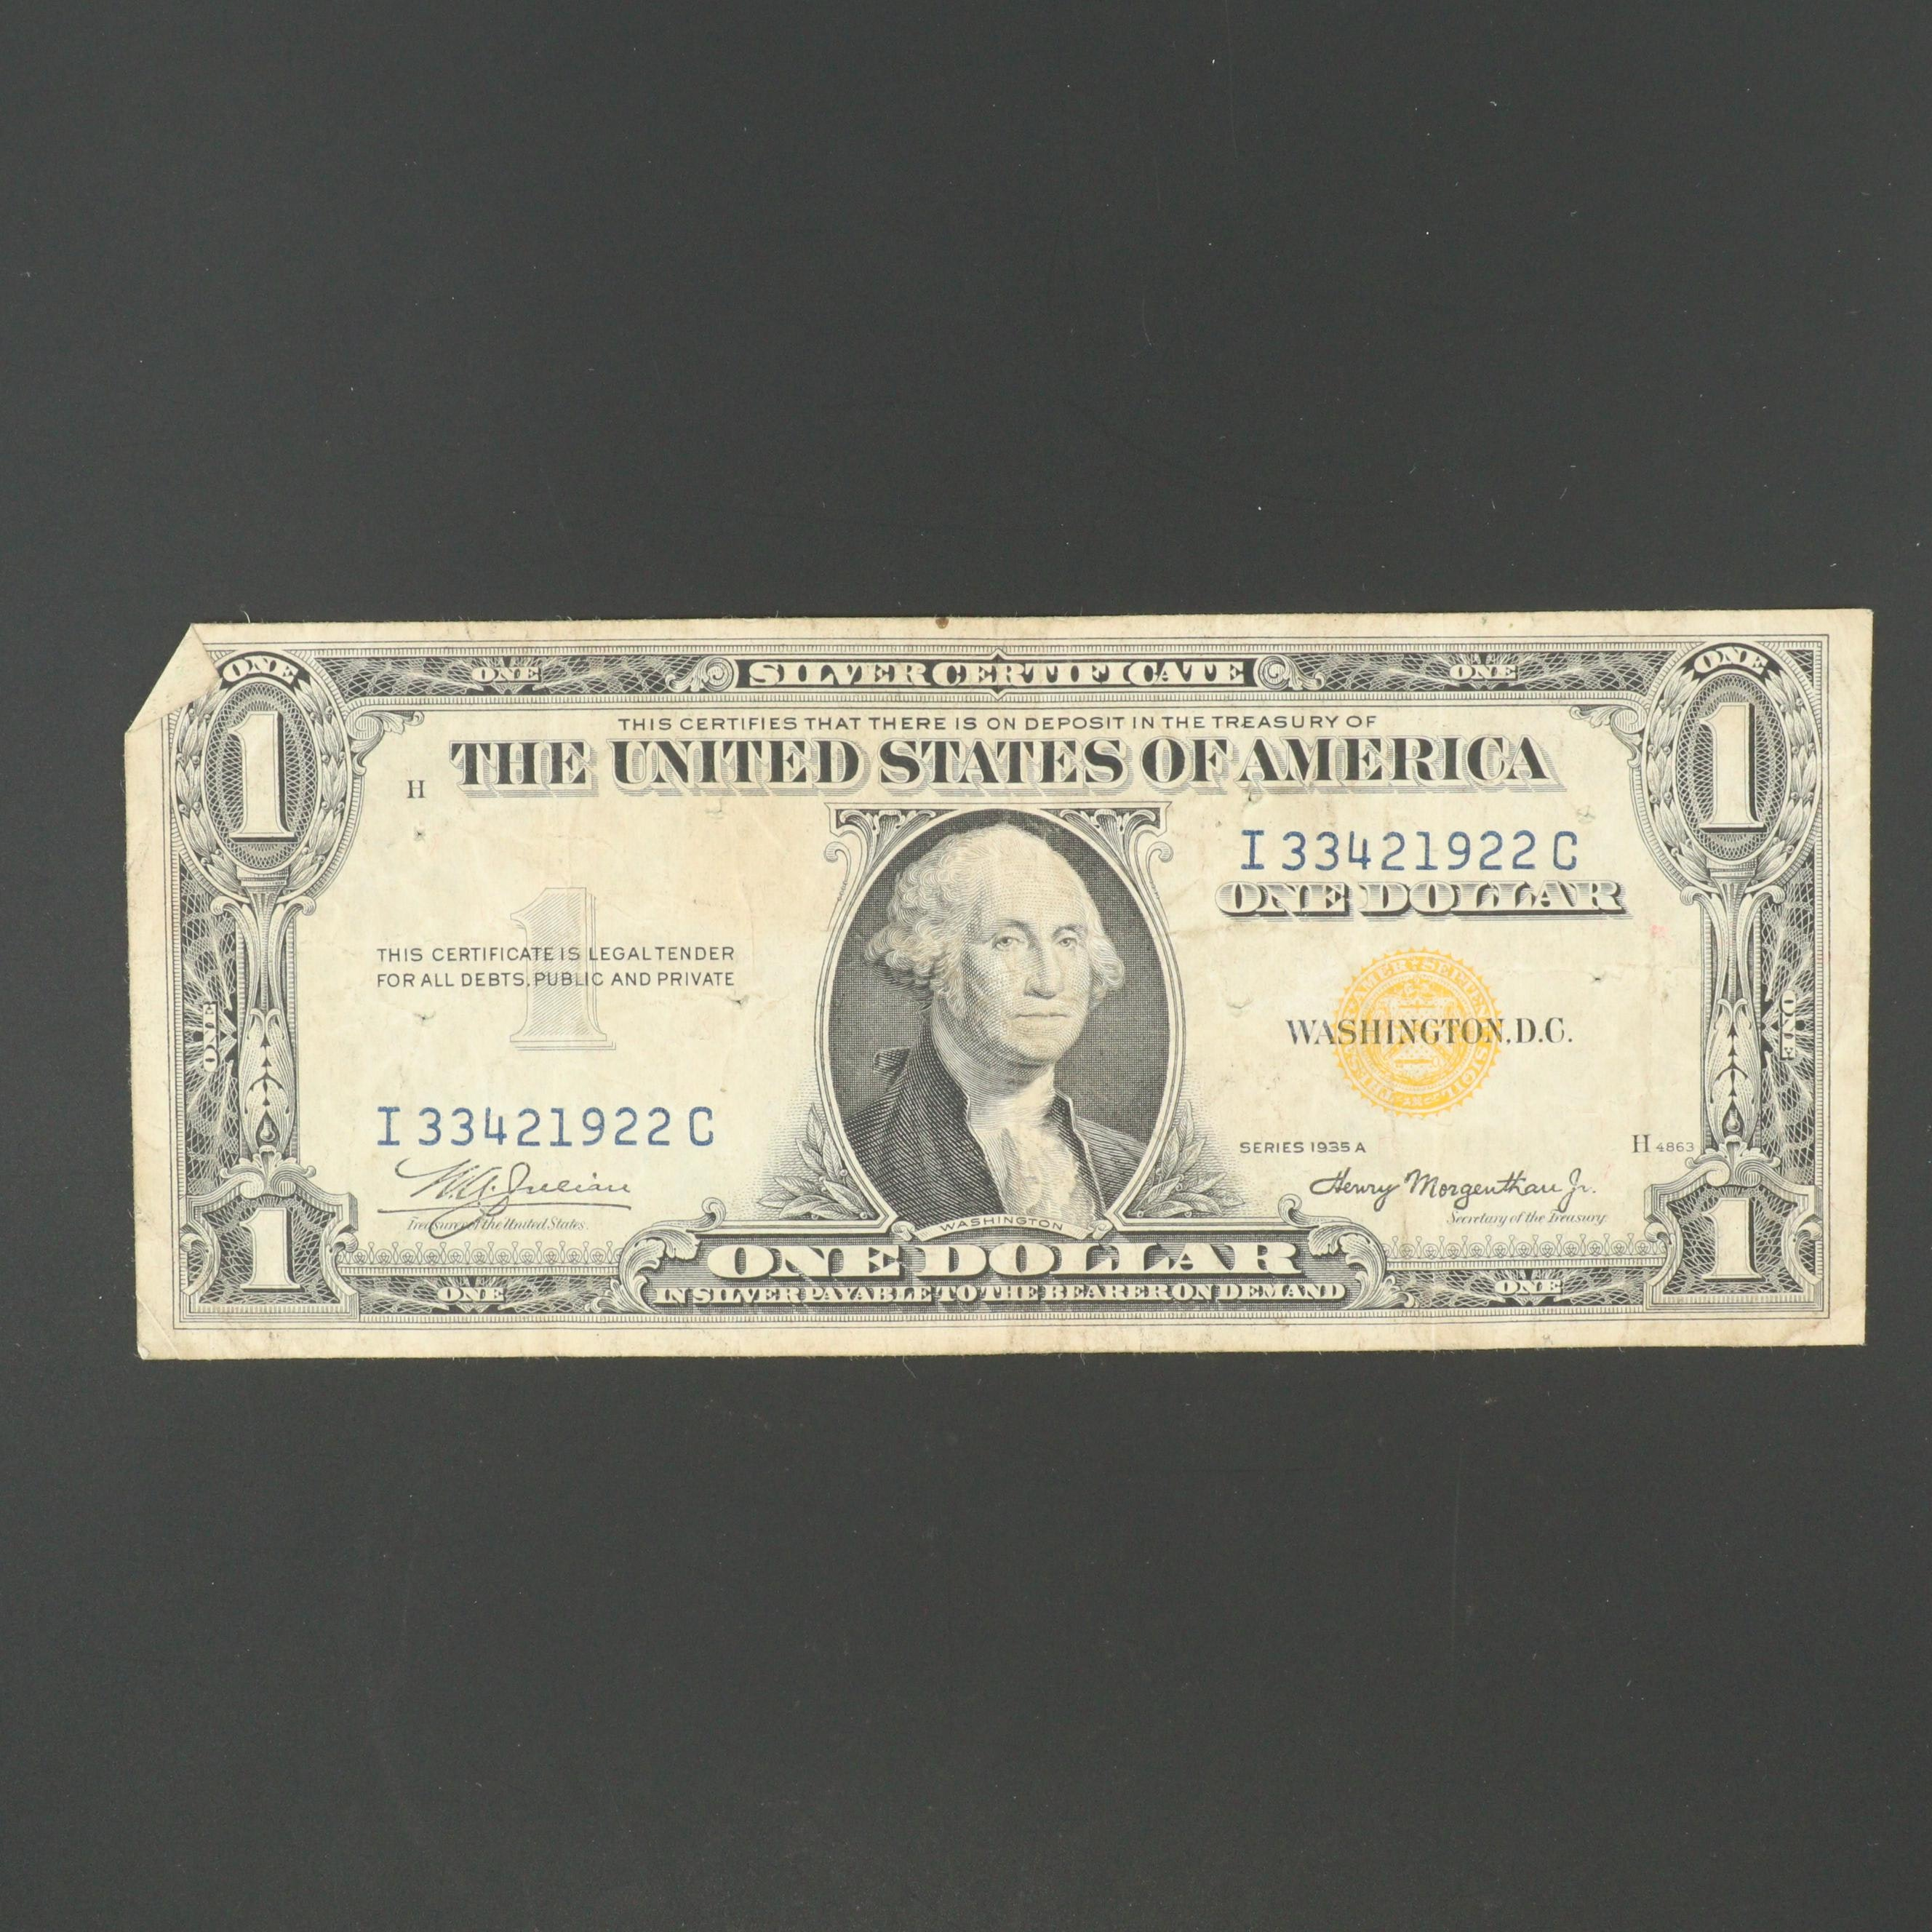 1935-A U.S. $1 Silver Certificate with Yellow Seal